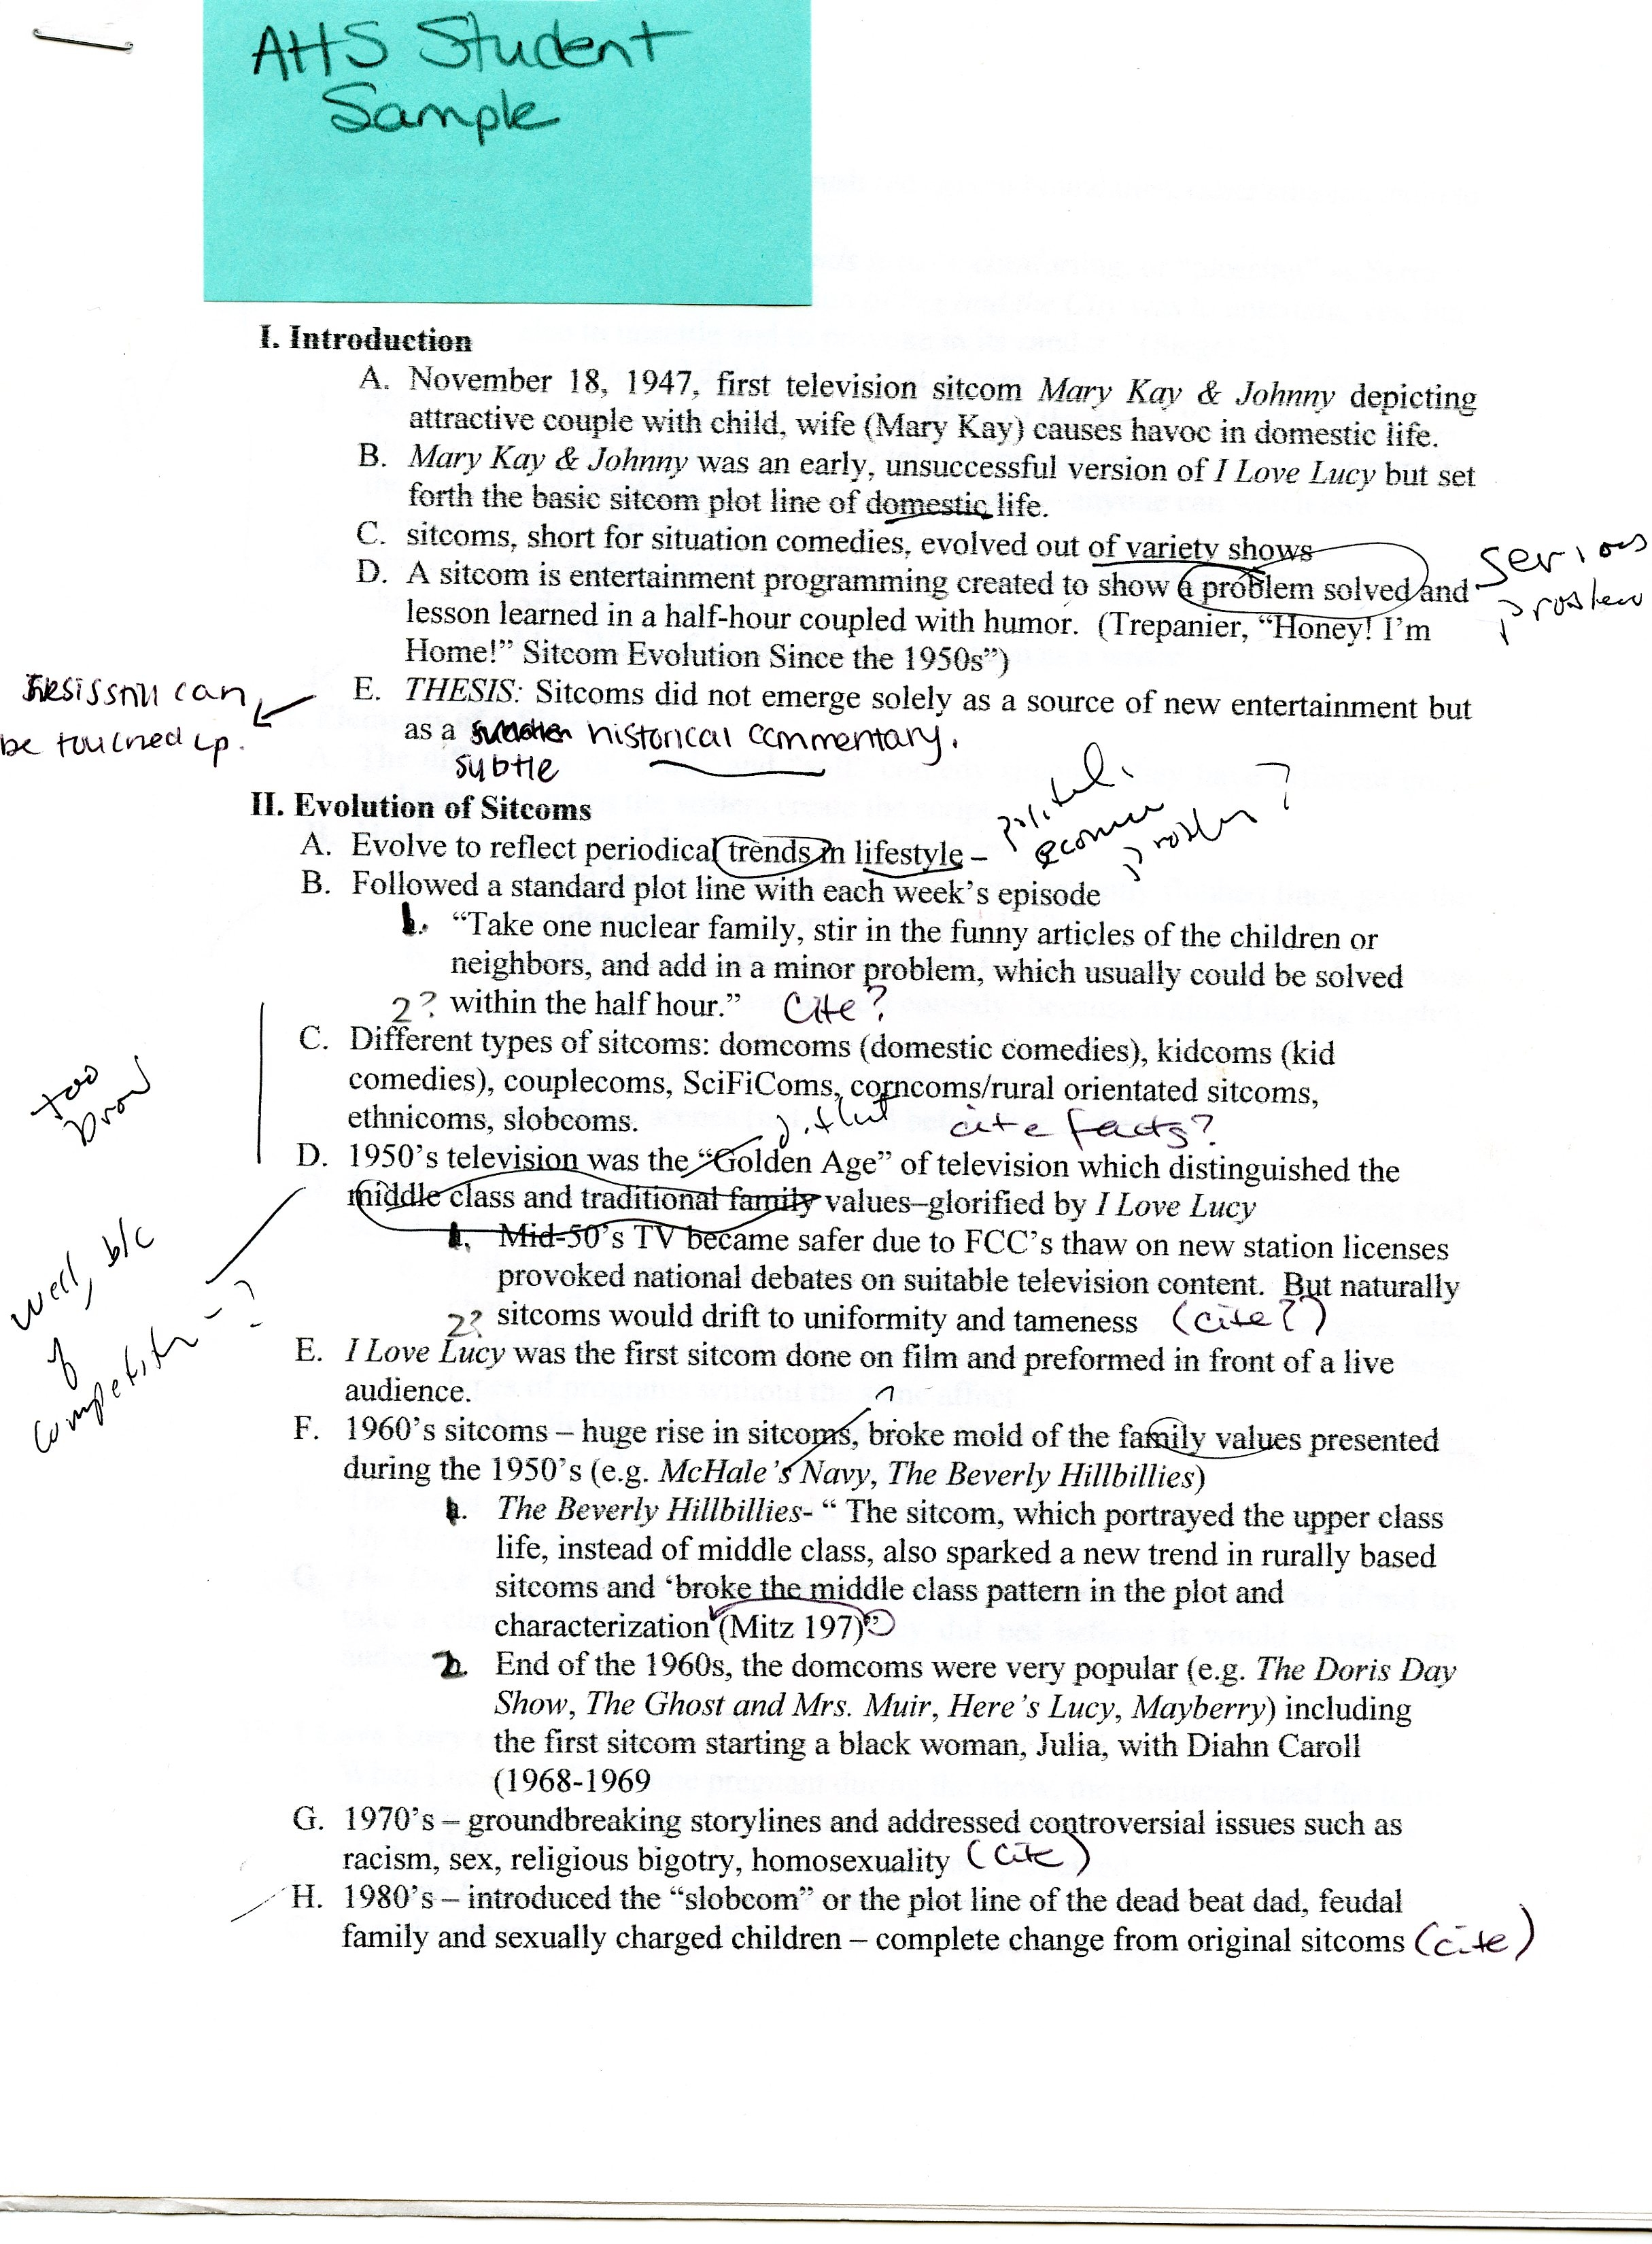 007 Smp Sample Outline 1 Thematic Essay Top Topics For Us History Regents Global Full